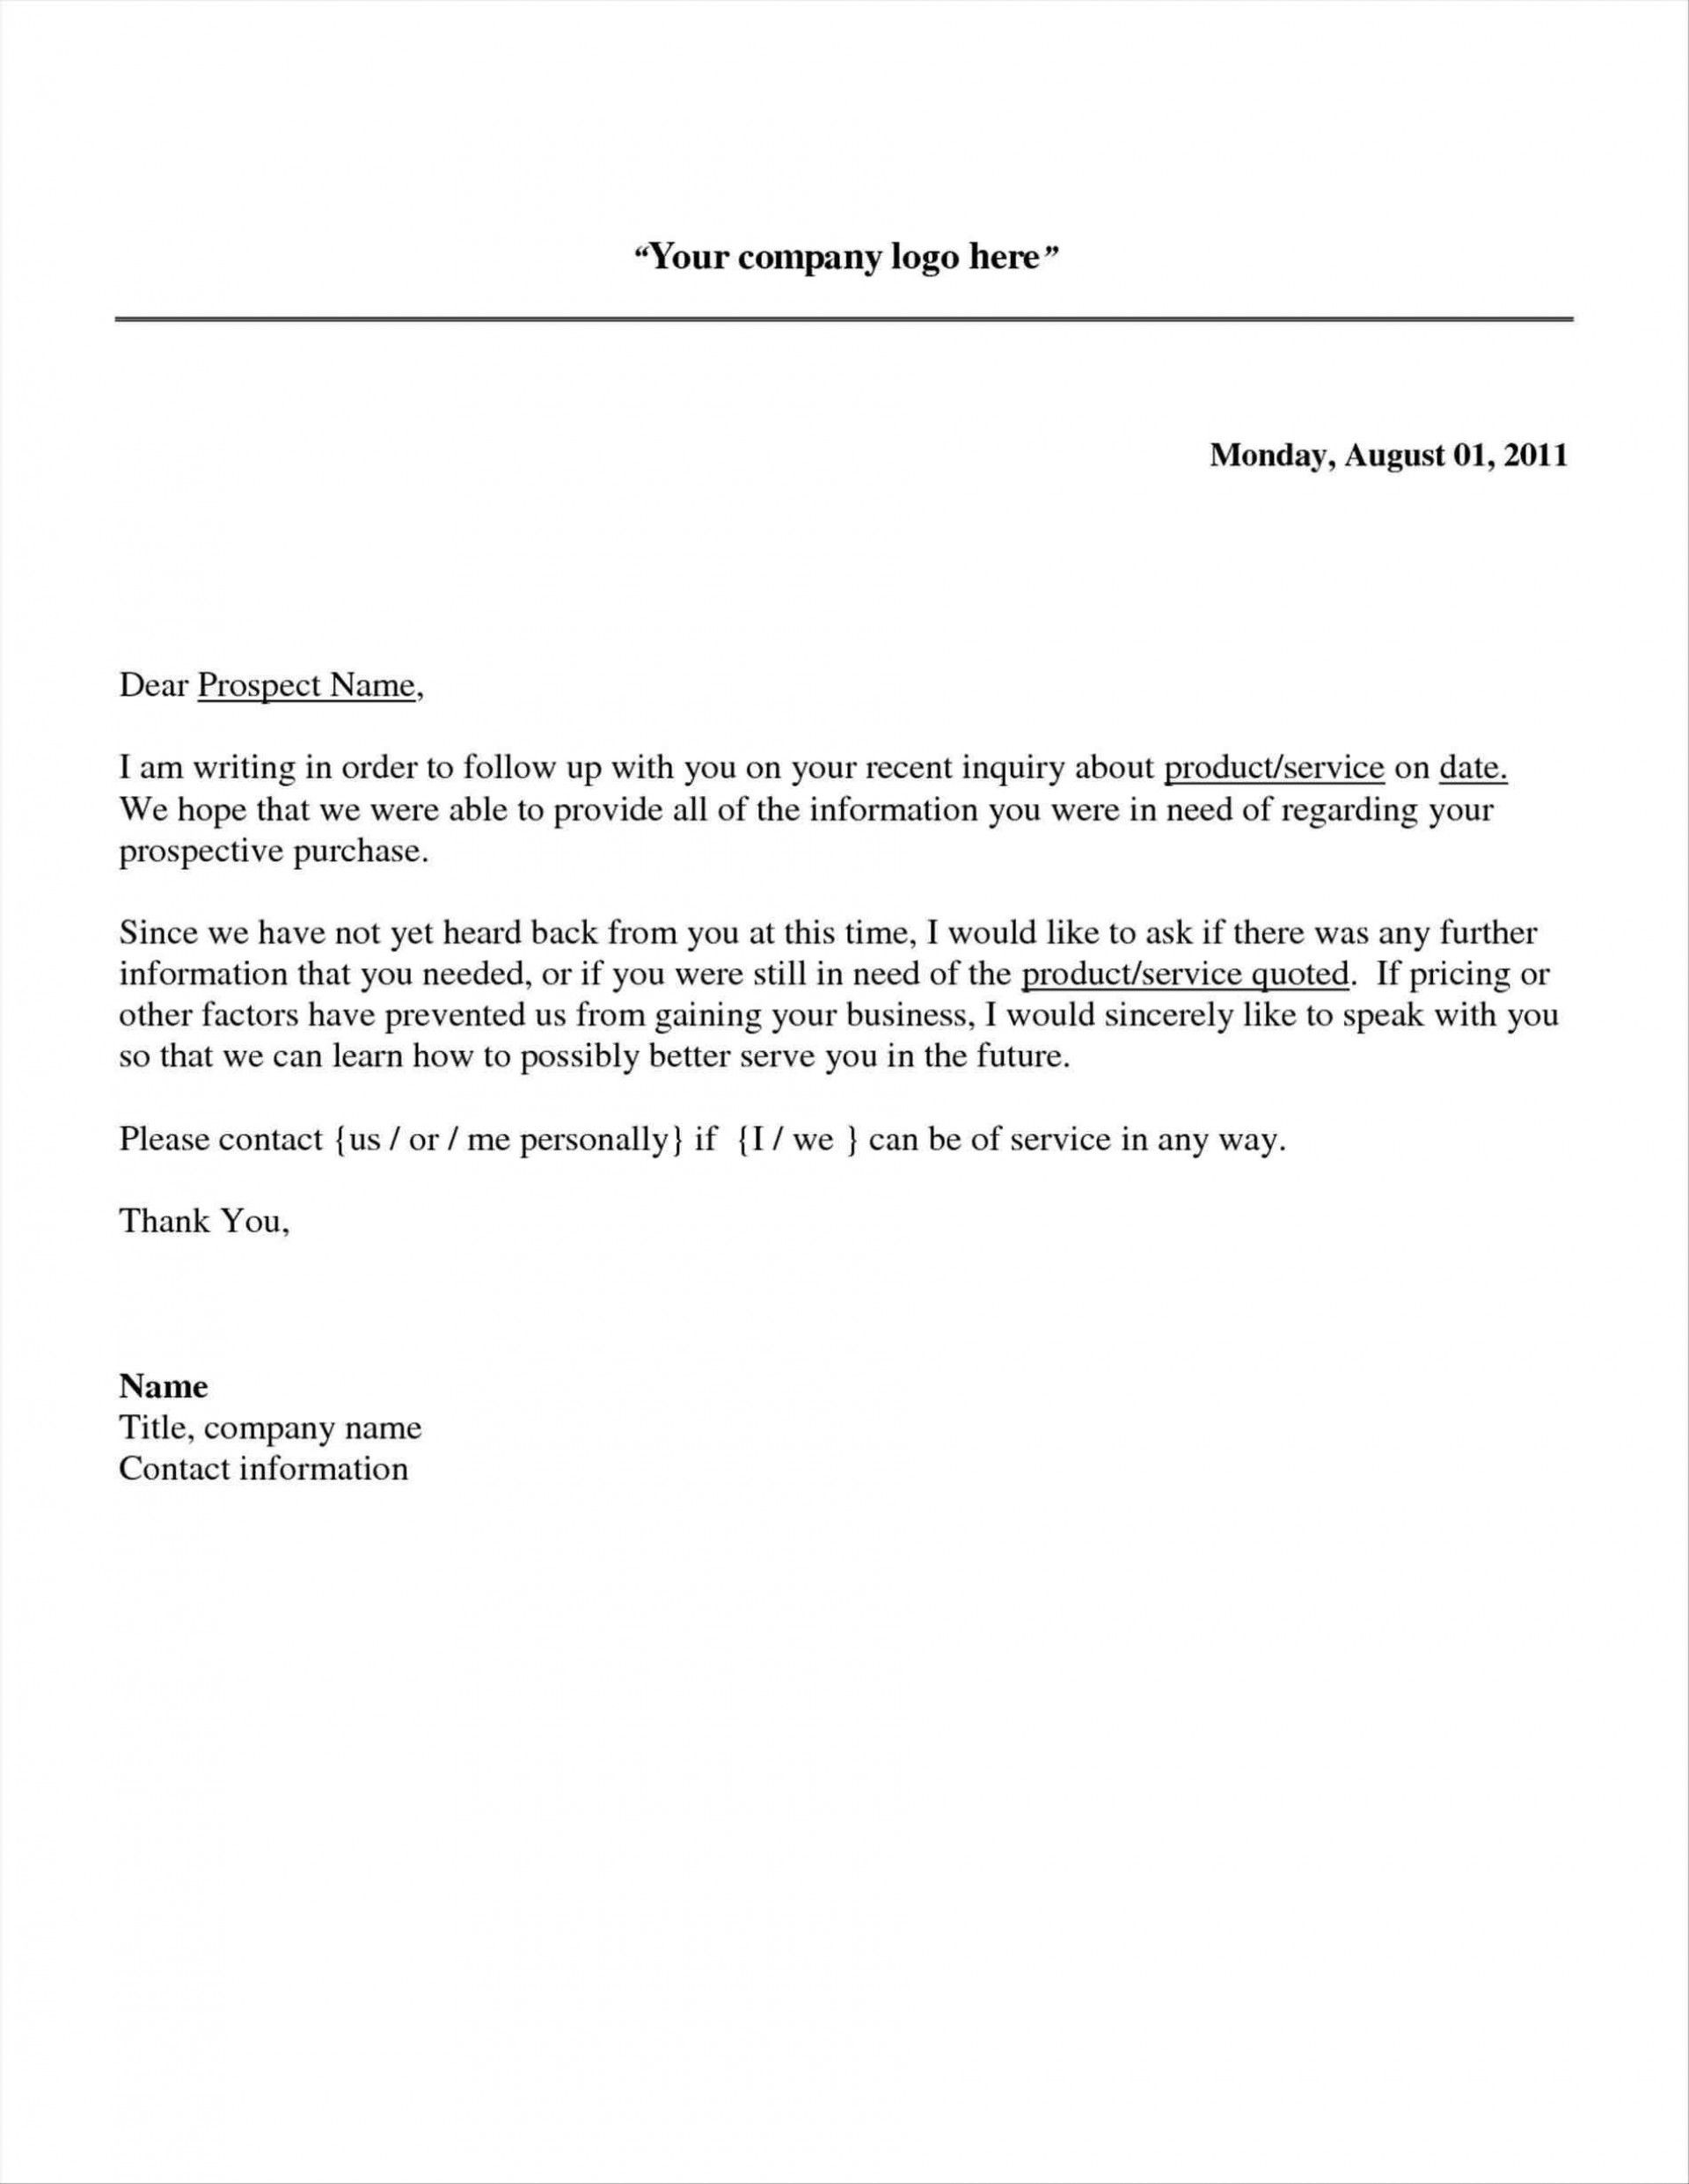 003 Frightening Follow Up Email Template After No Response High Definition 1920